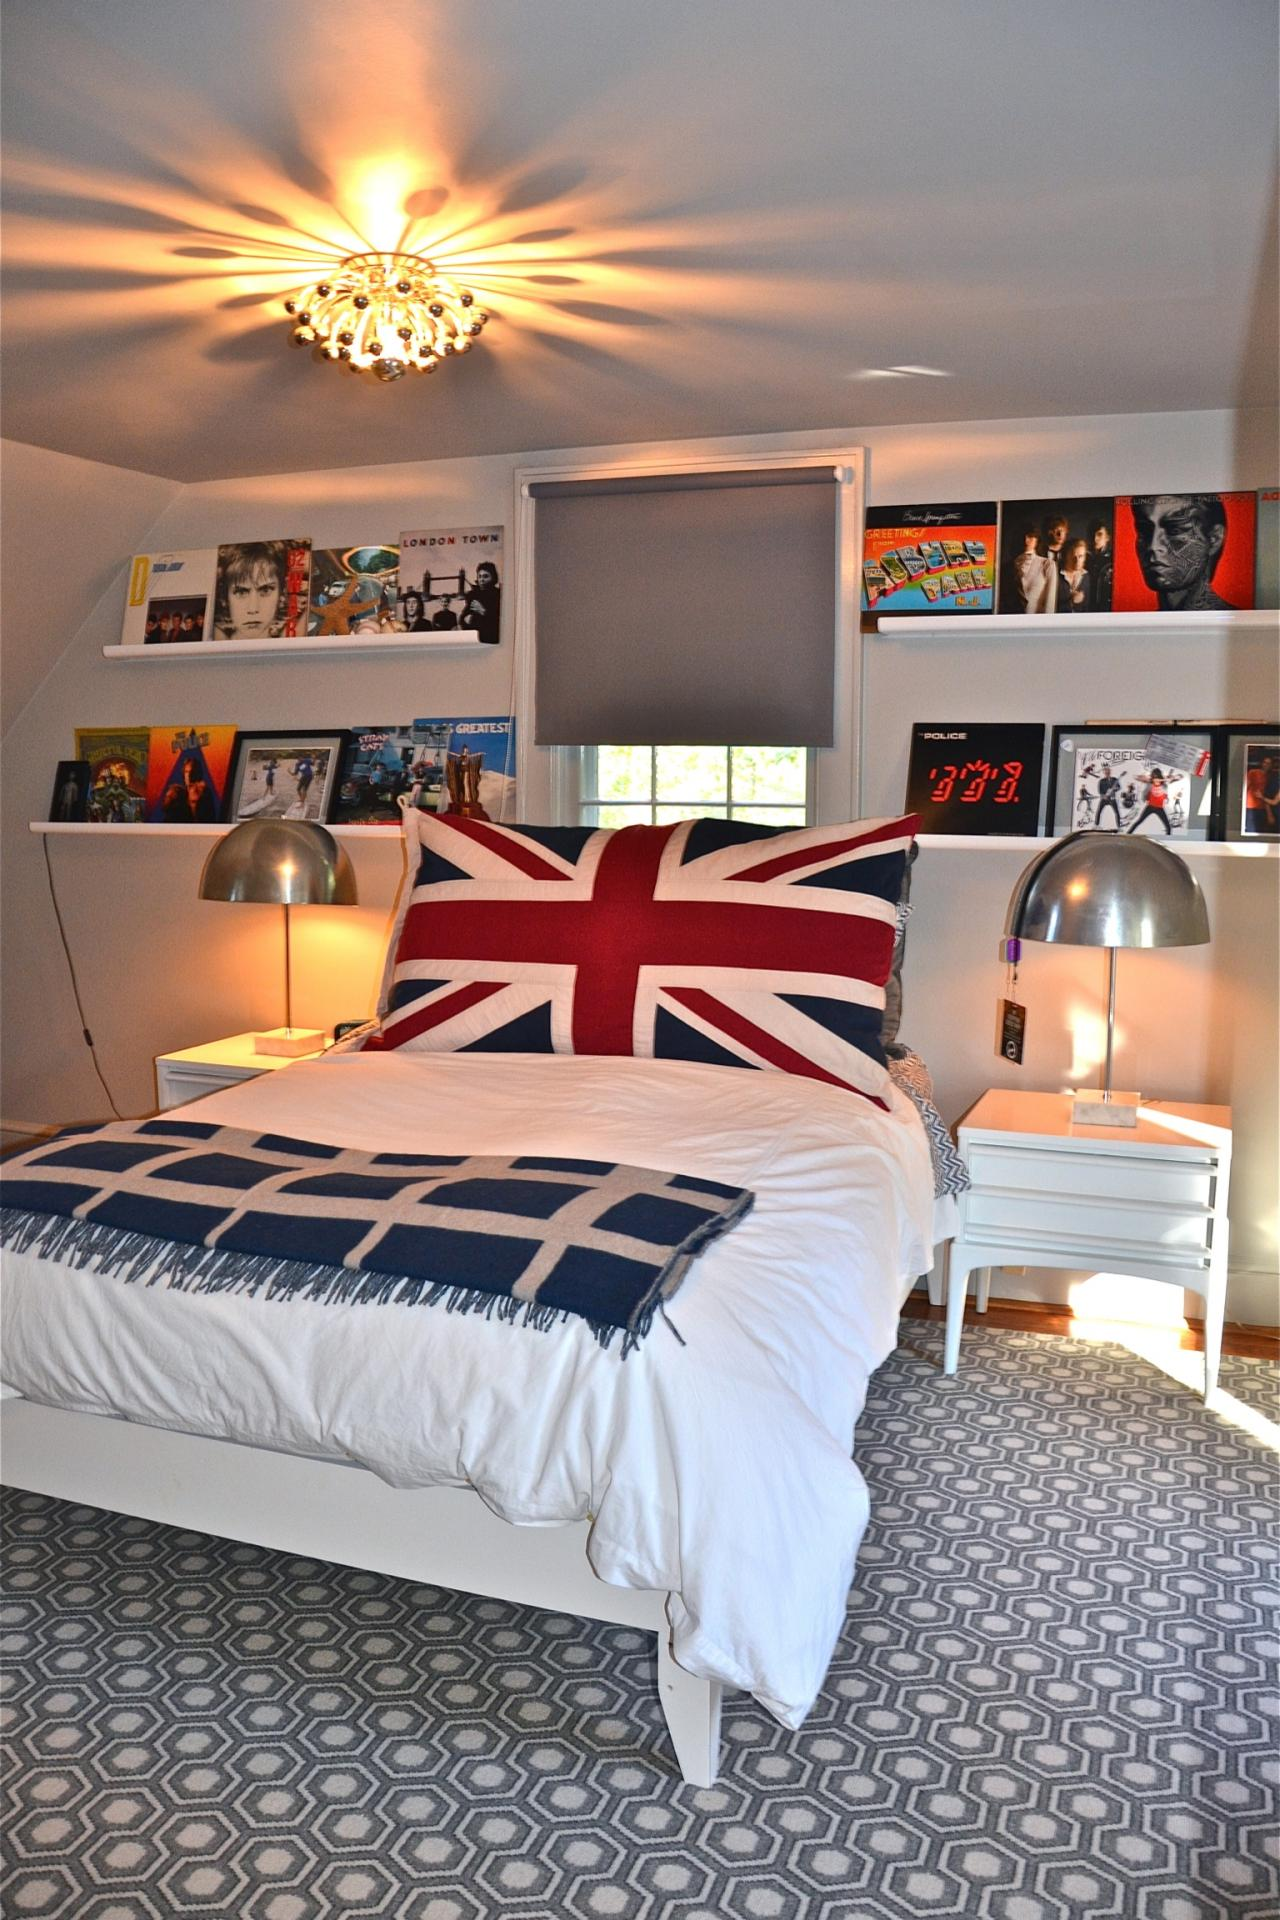 Sophisticated Teen Bedroom Decorating Ideas | HGTV's ... on Teen Room Decoration  id=73059